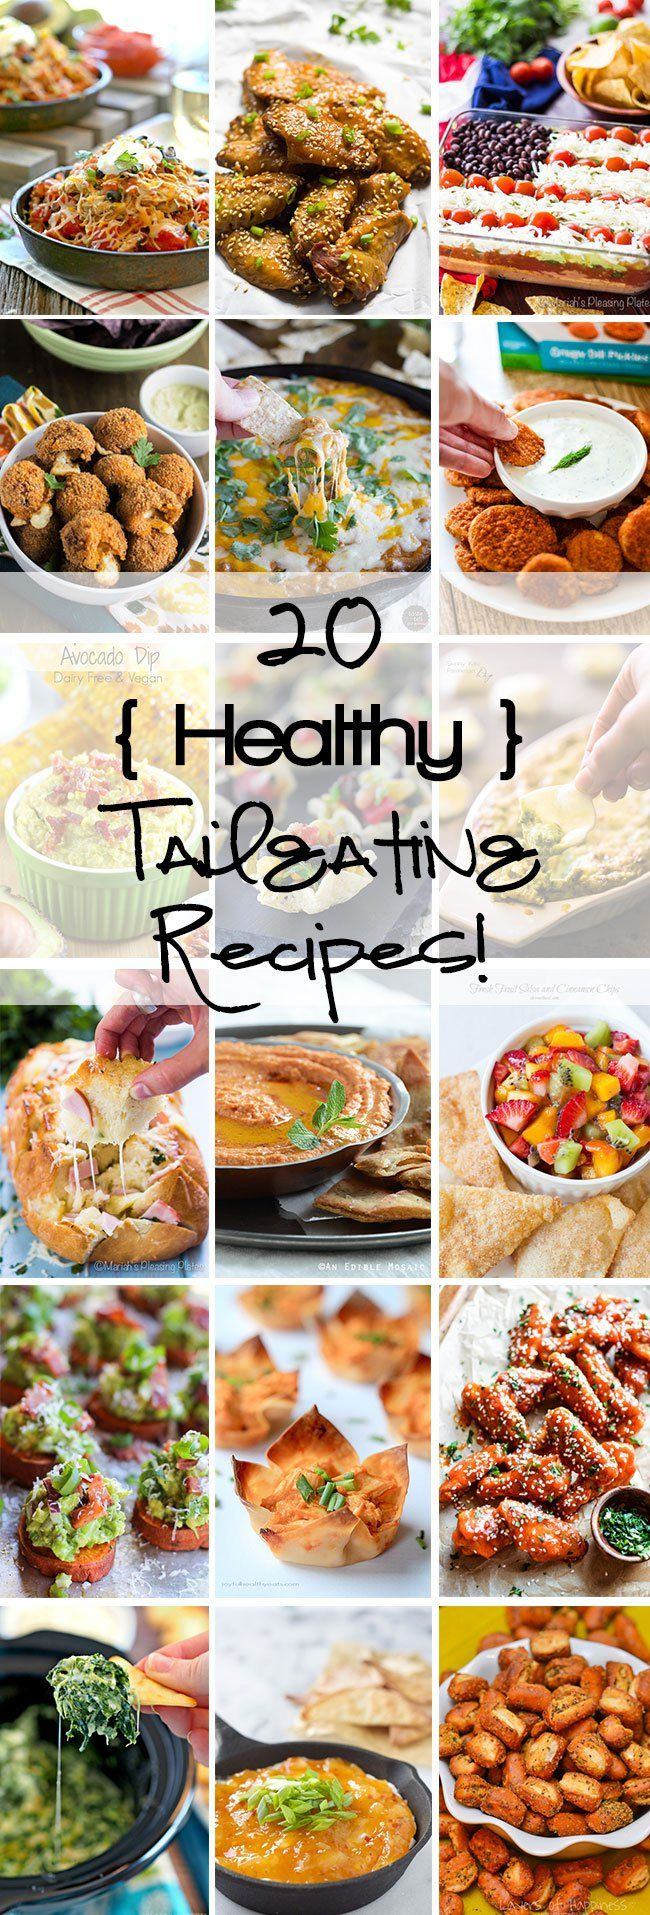 20 healthy tailgating recipes to fulfill every taste bud!